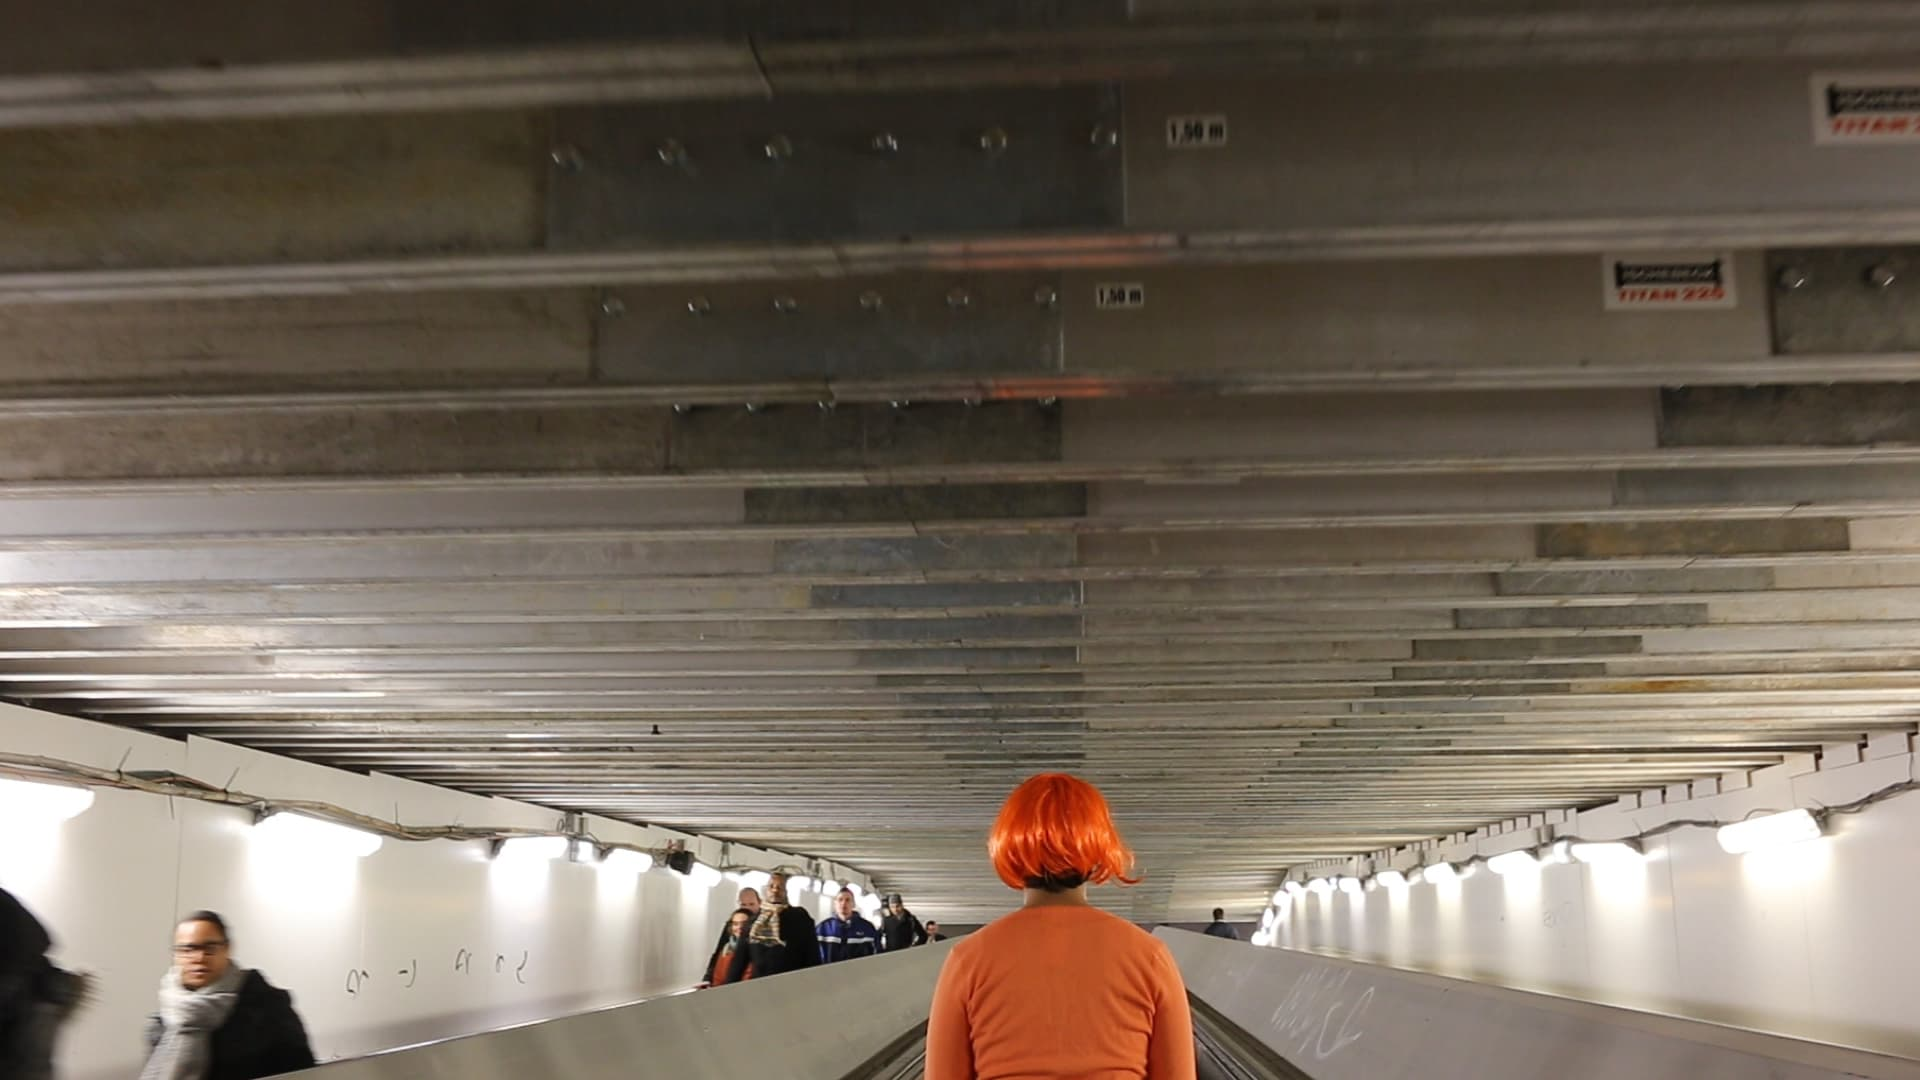 Still from the film Network/Intersect, by Ollie Palmer. The image depicts a person wearing an orange wig on an escalator.